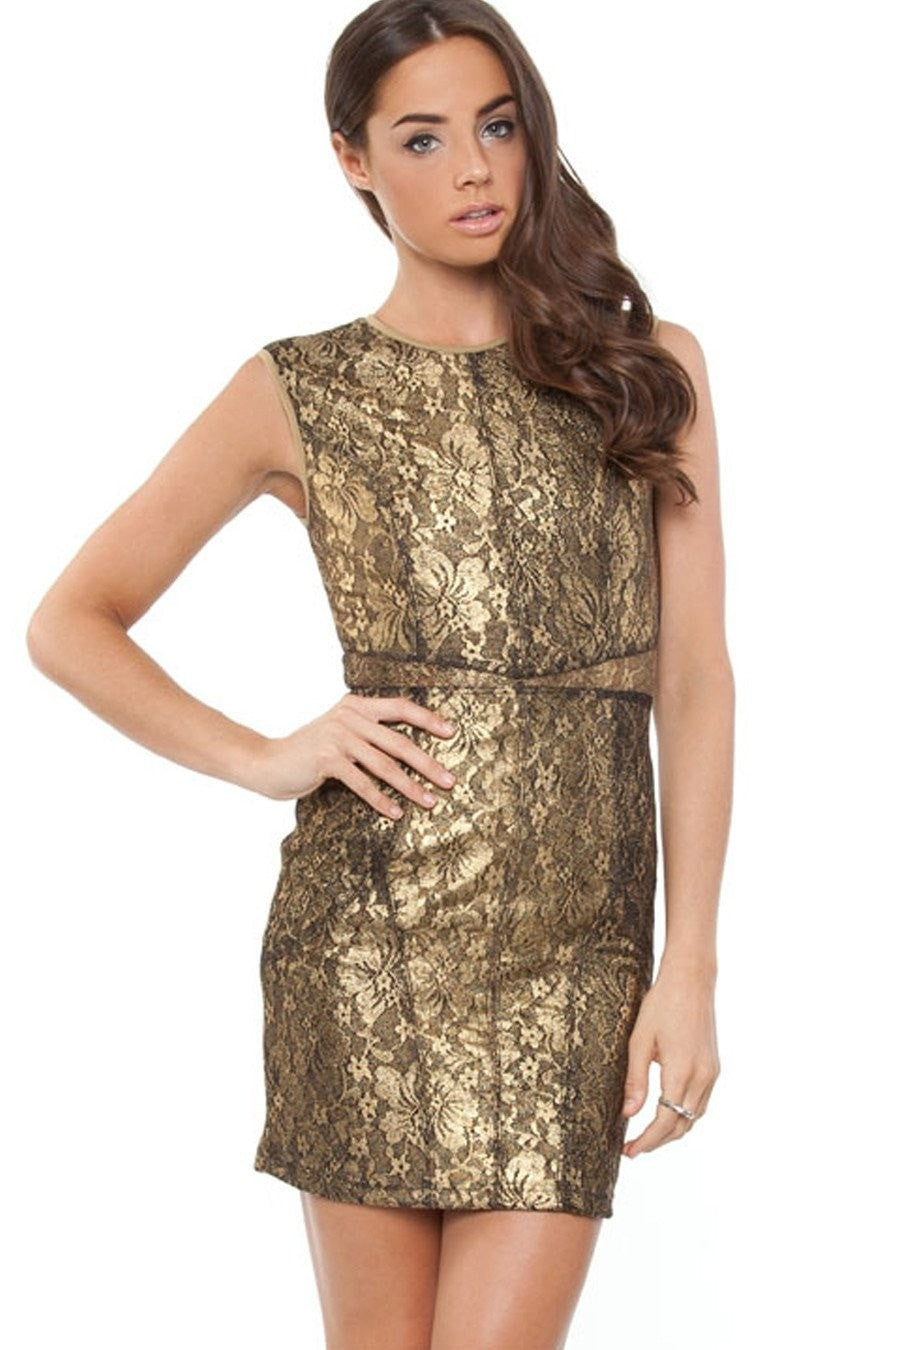 cb807d8f0753 dress-keepsake-the-label-stand-by-me-gold-lace-body-con-dress -1.jpg v 1540529383